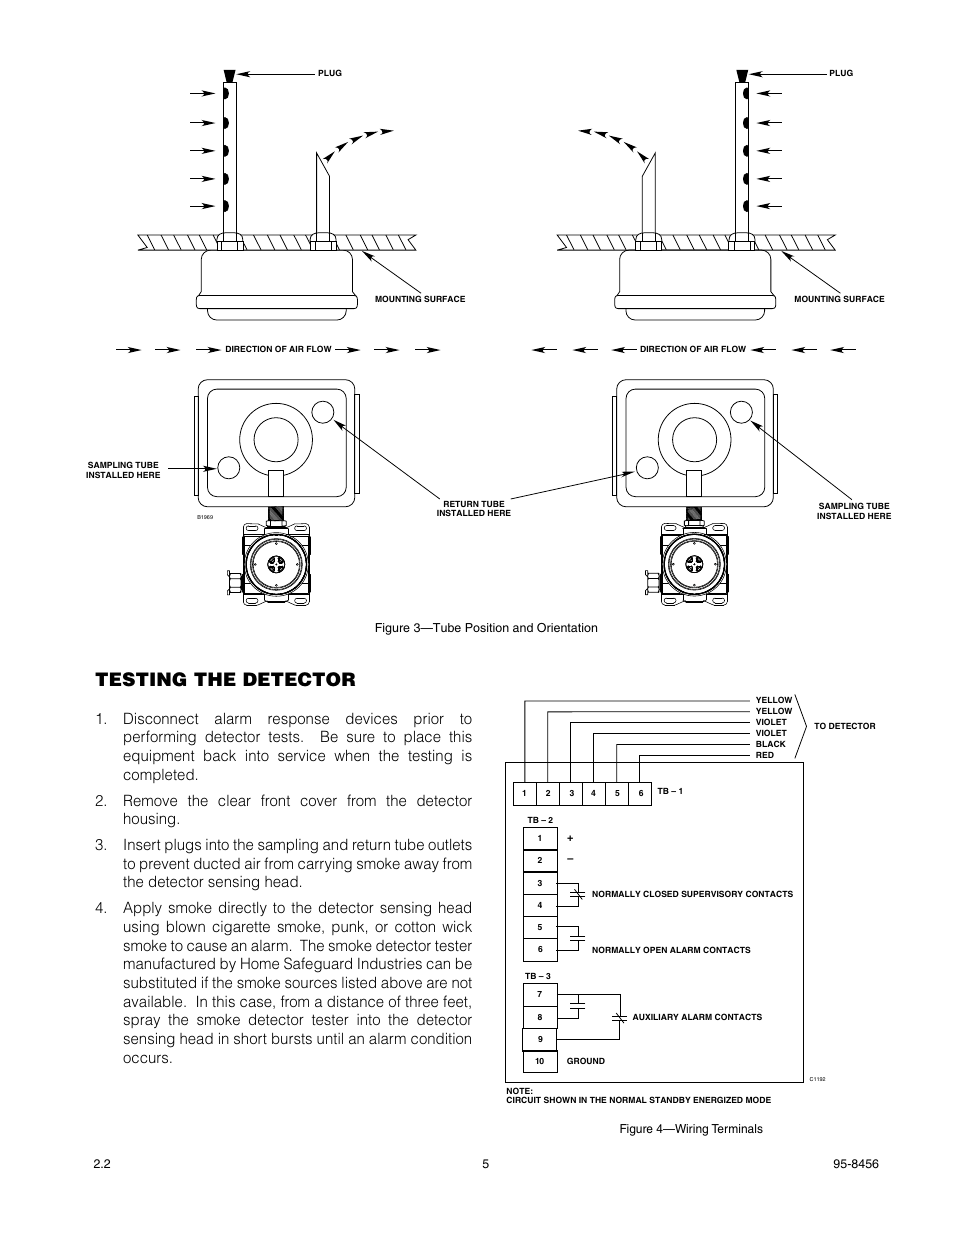 det tronics u5006 air duct smoke detector page5 testing the detector det tronics u5006 air duct smoke detector duct smoke detector wiring diagram at virtualis.co